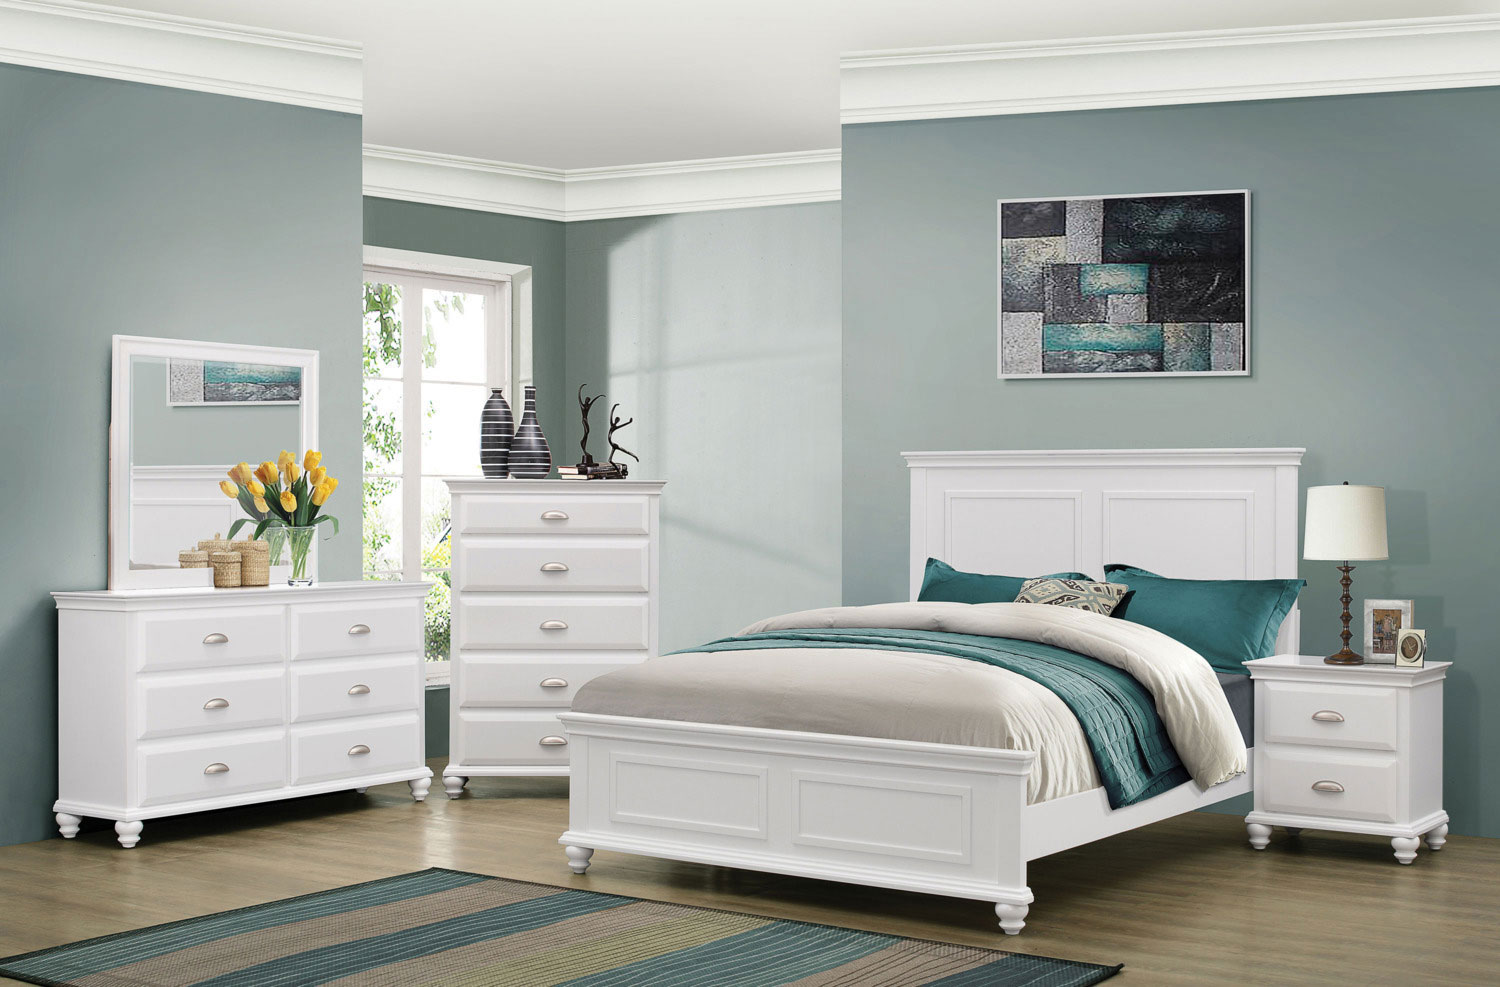 Meadow Shore 3-Piece Queen Bedroom Set - White